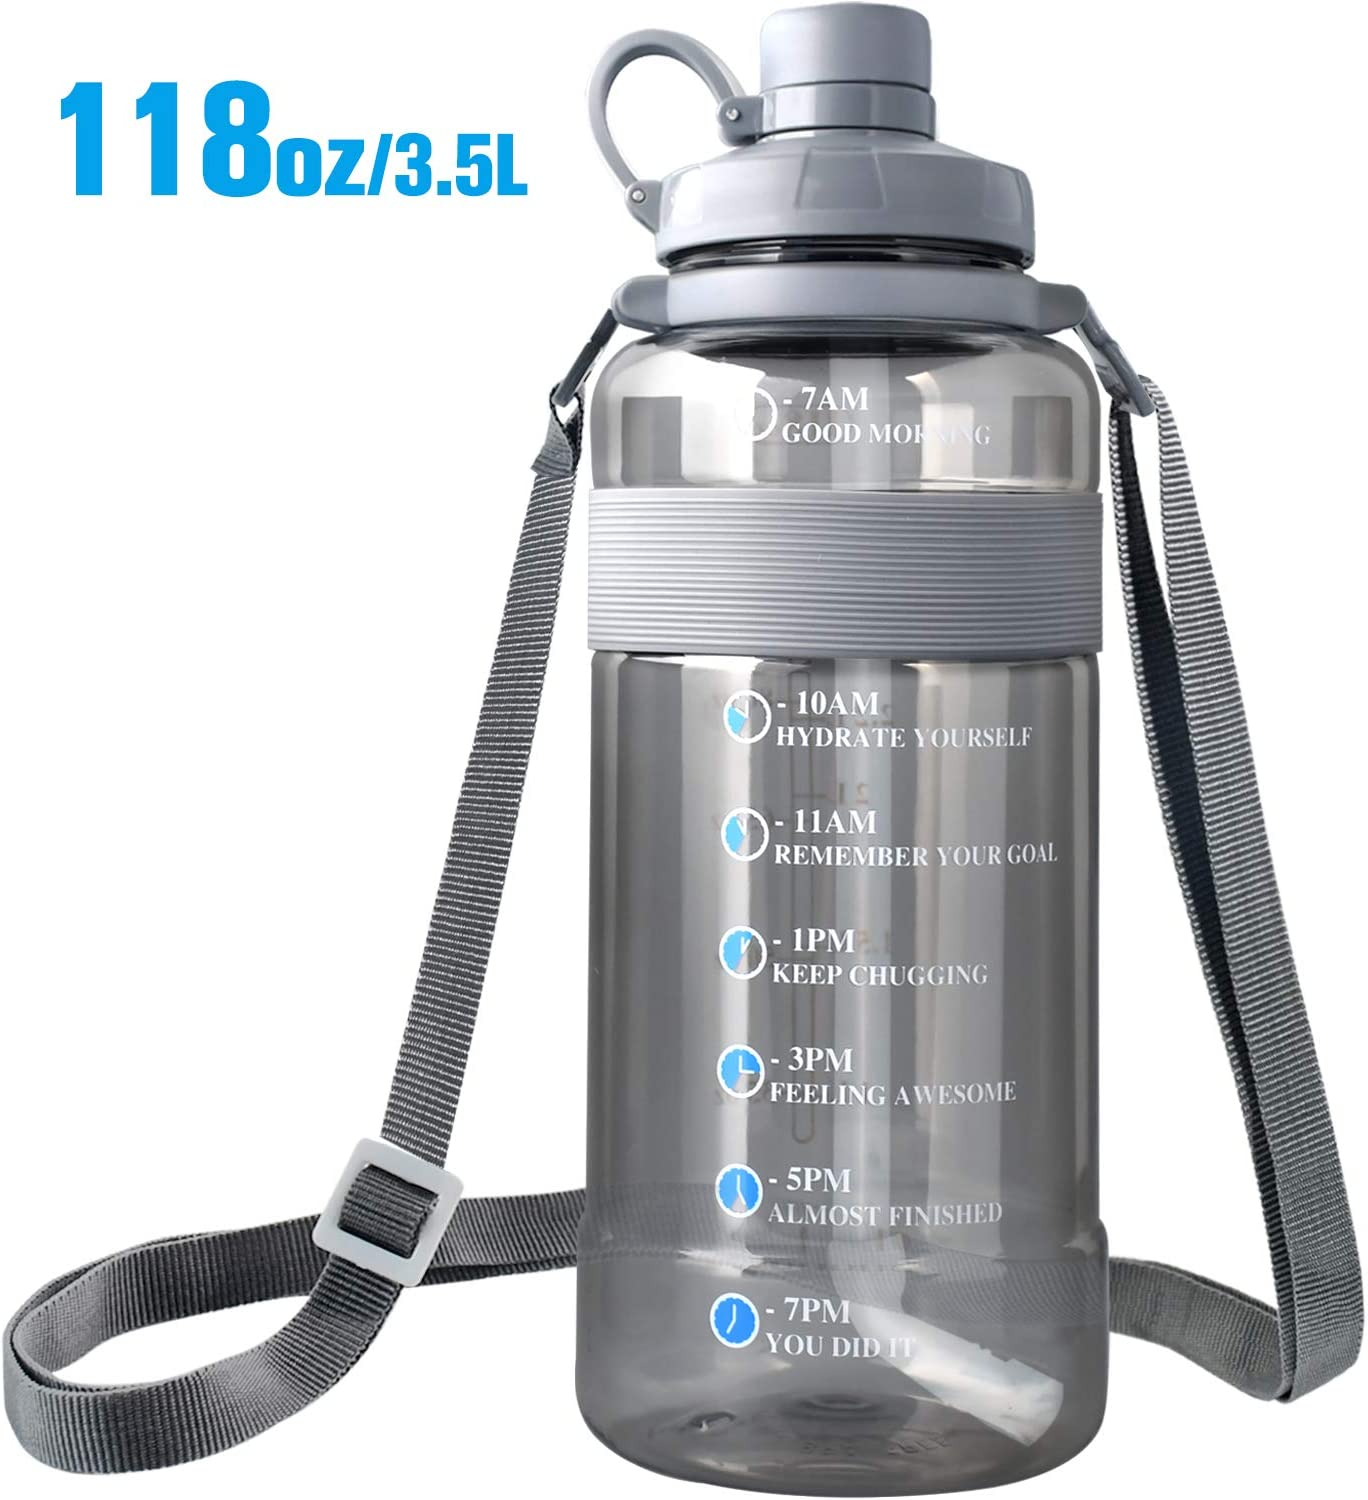 75oz, Blue Large Water Bottle with Straw BPA Free Sports Water Bottle with Strap Portable Motivational Water Bottle with Time Marker Water Bottle Leak Proof Gallon Water Jug Wide Mouth